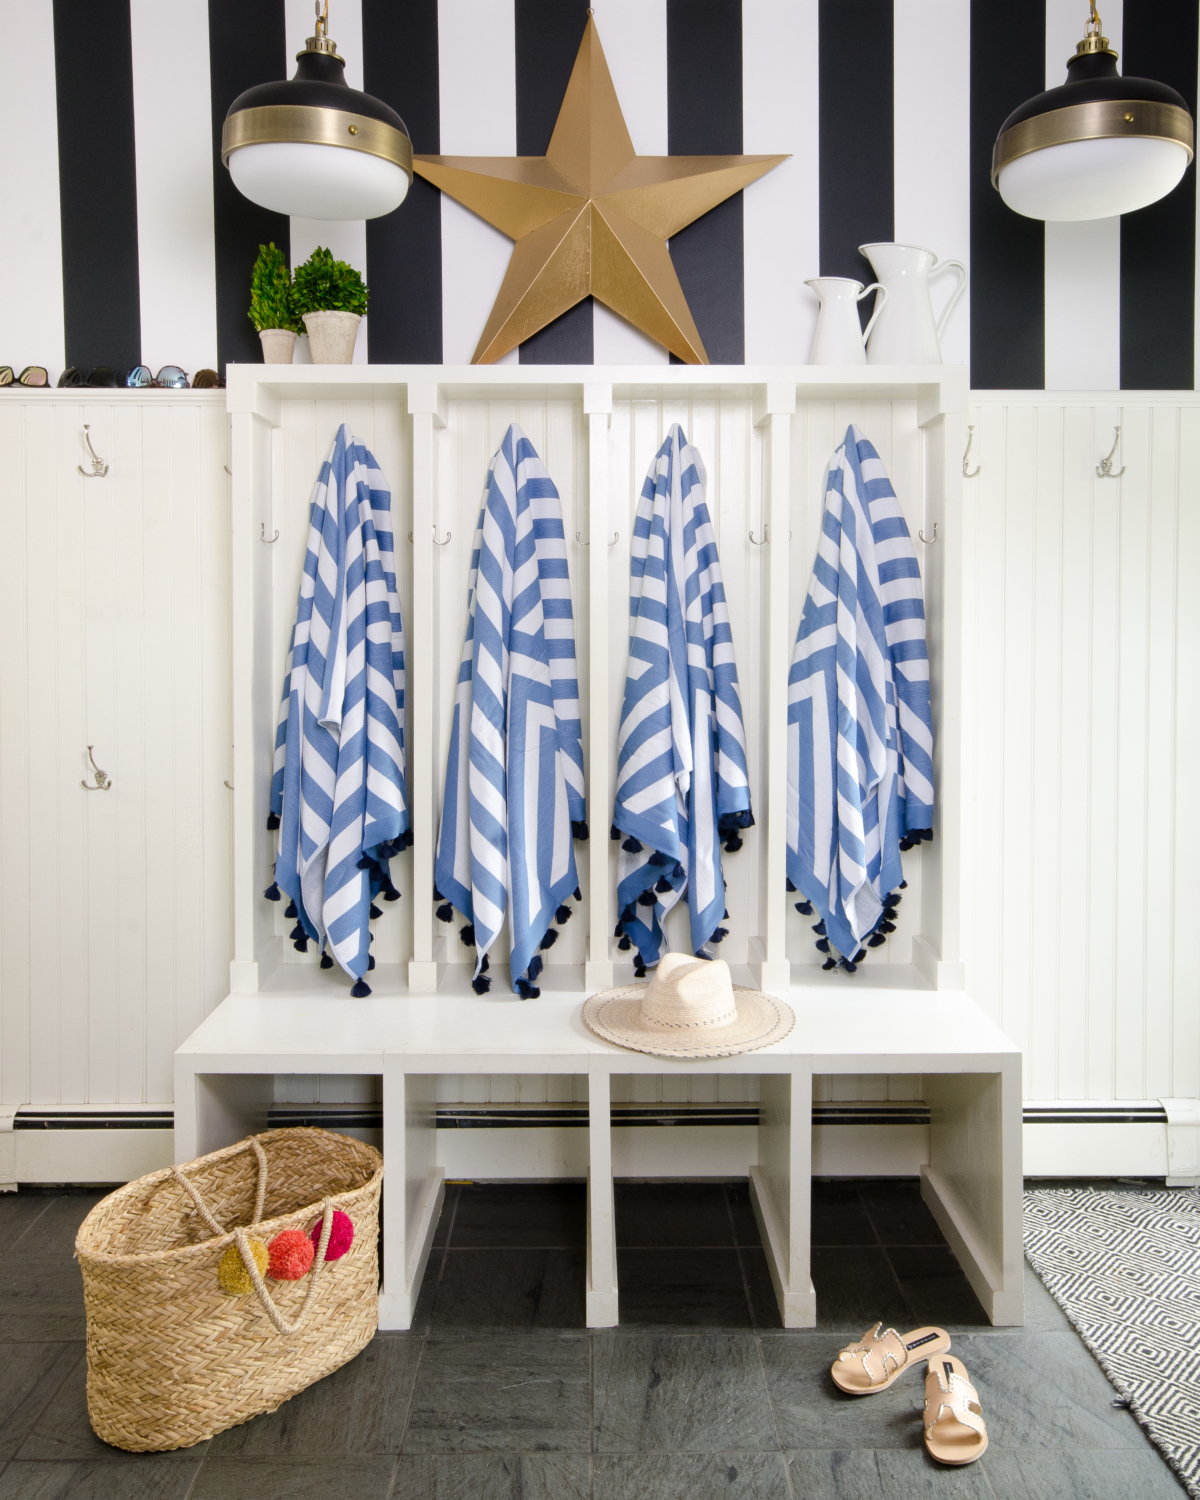 Mudroom with black and white striped wallpaper and beadboard paneling. Includes Feiss cadence pendants and features Serena and Lily Sydney beach towels.